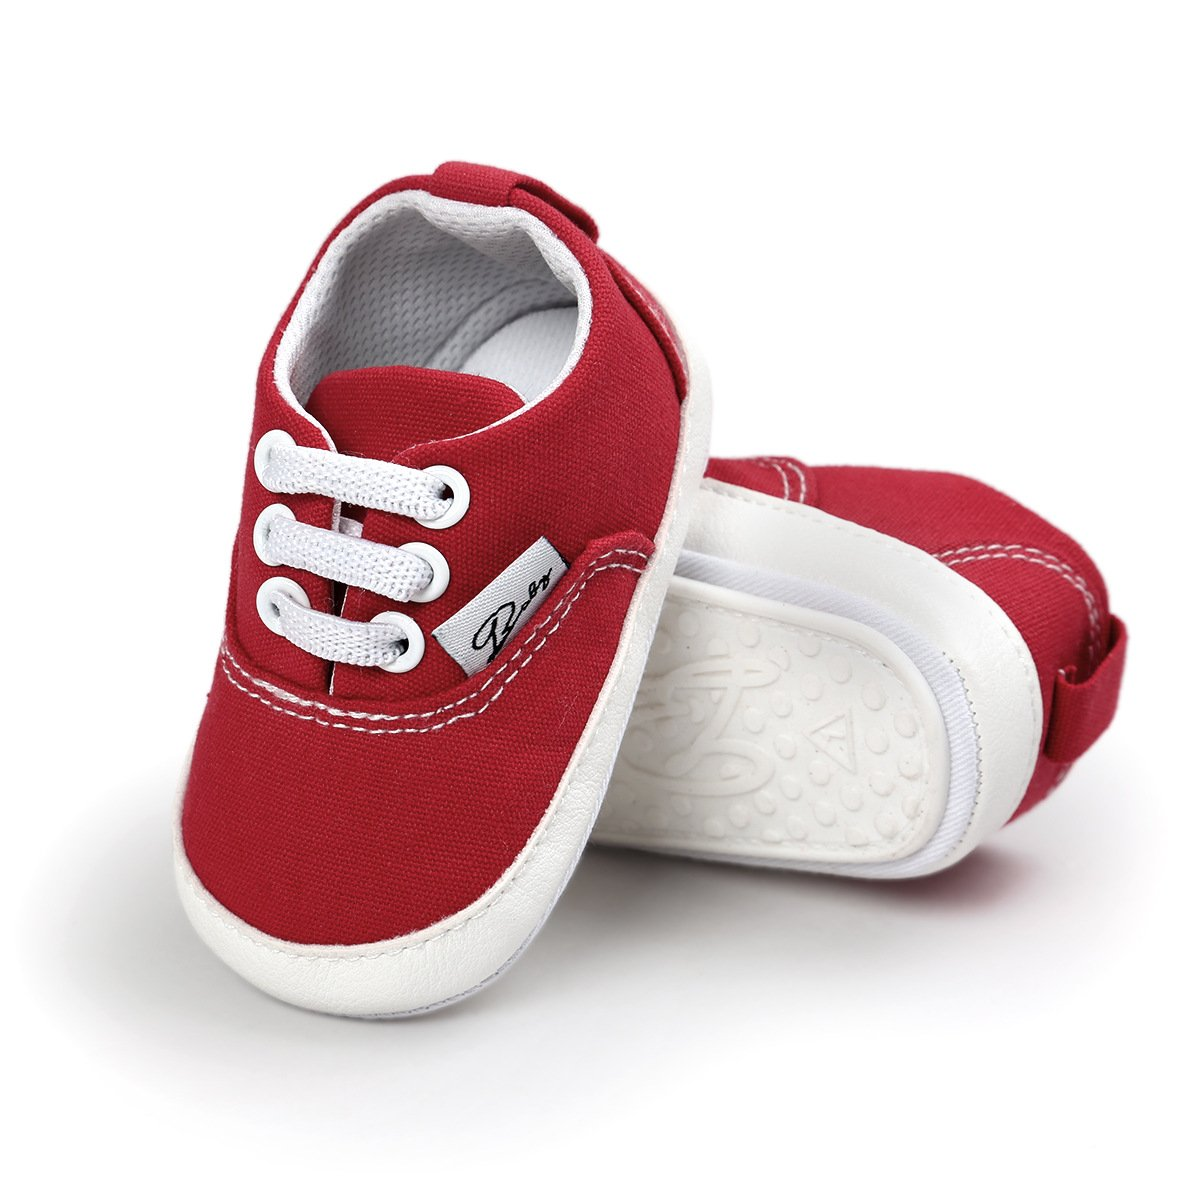 HLM Baby Shoes Sneakers Infant for Girls Boys Walking Tennis Canvas Pink Toddler